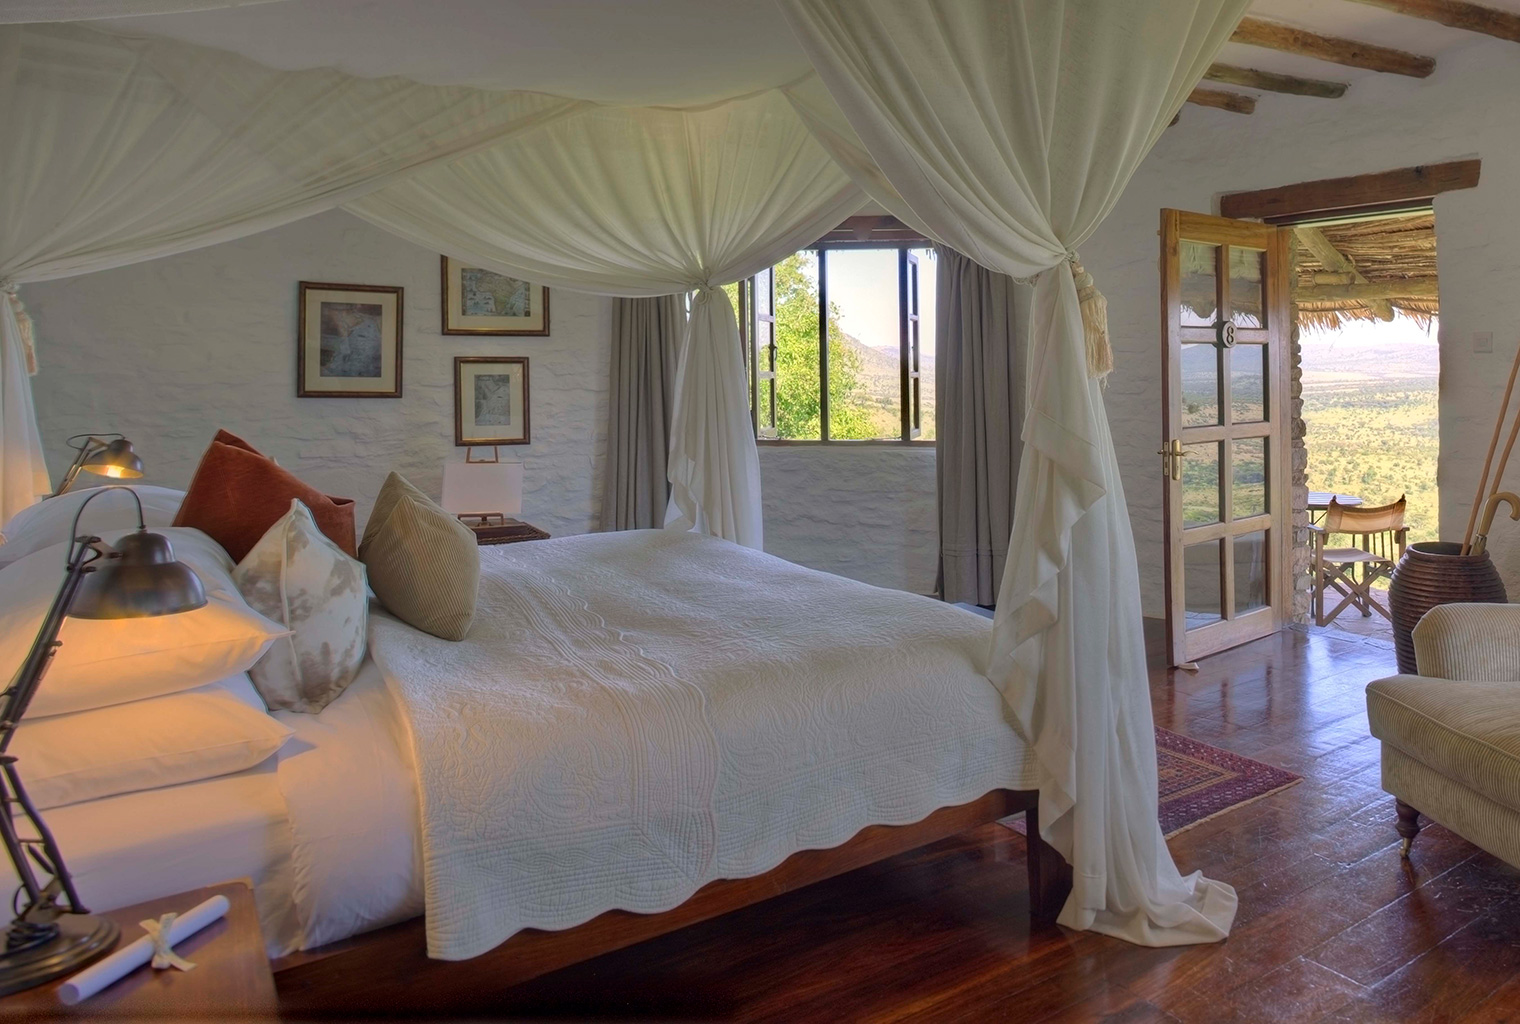 Kleins-Camp-Tanzania-Bed